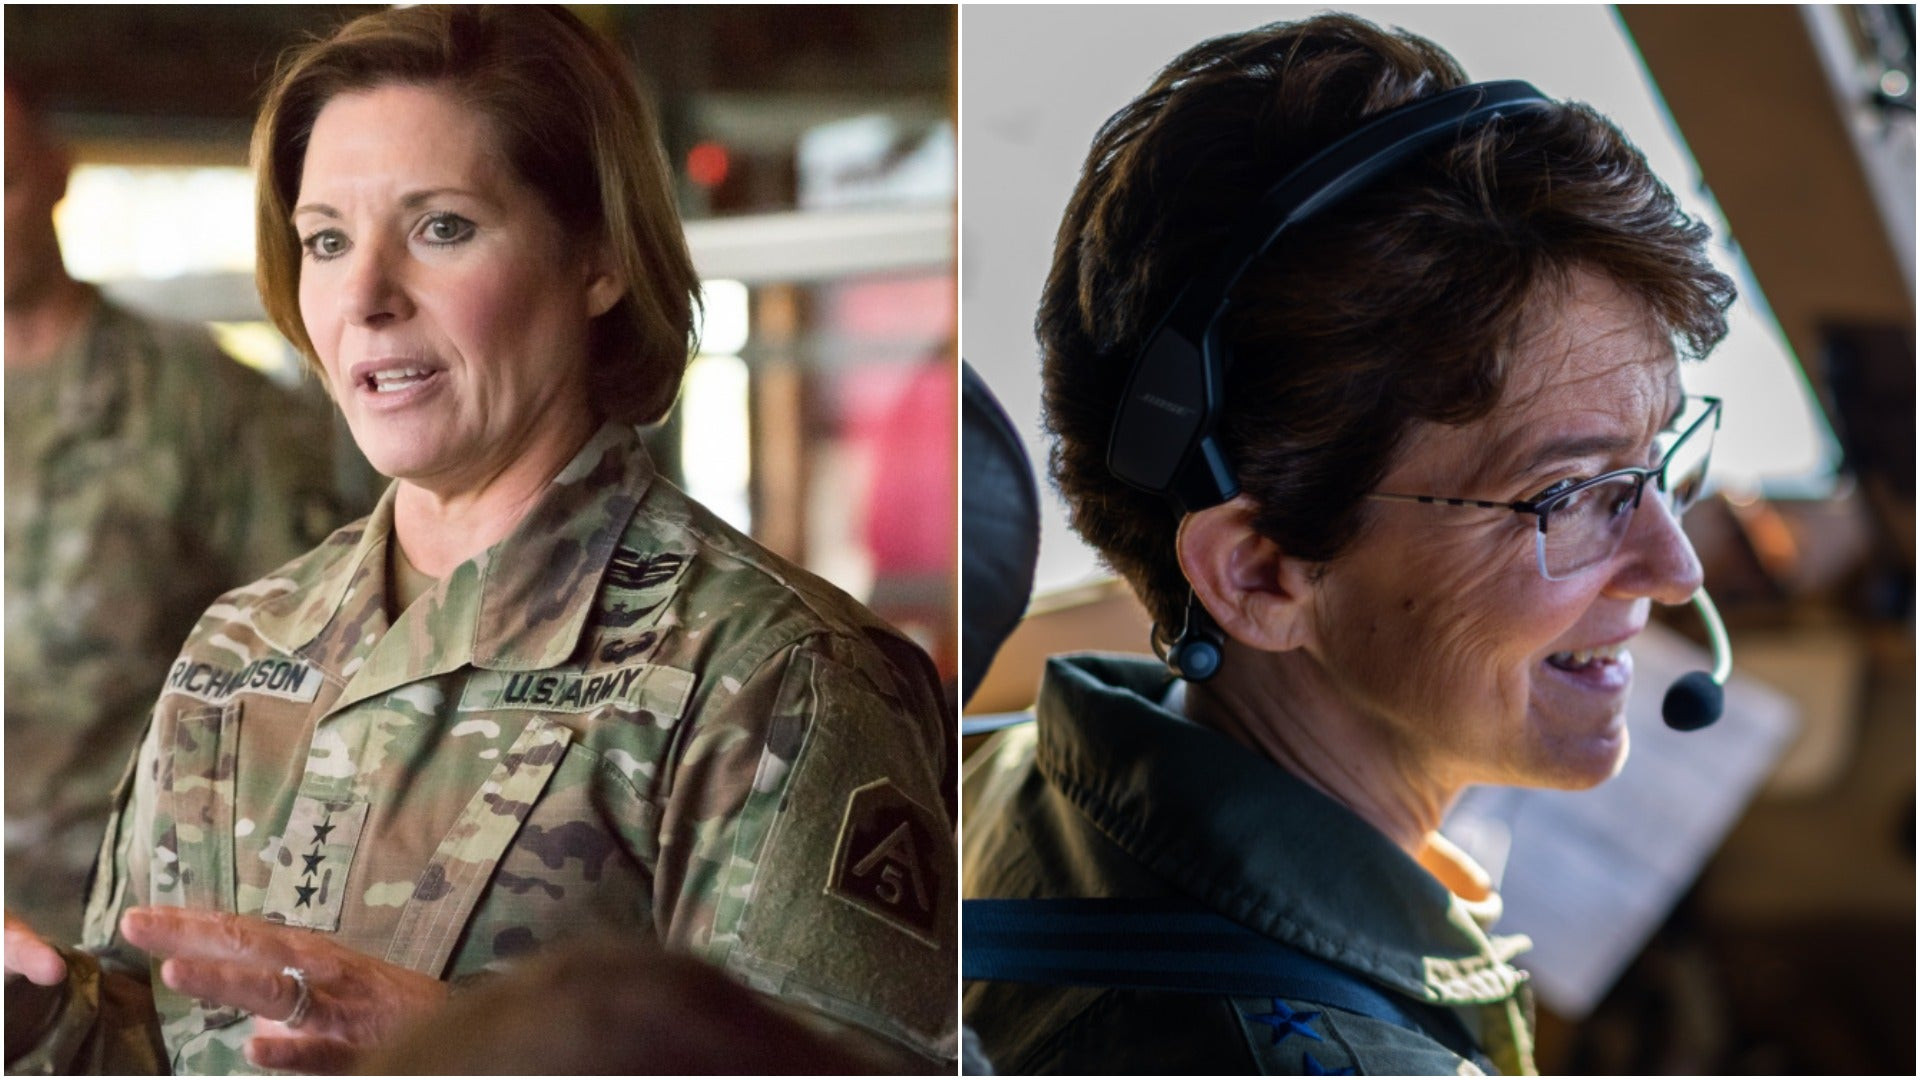 The Pentagon delayed promoting female generals over fears of Trump's reaction